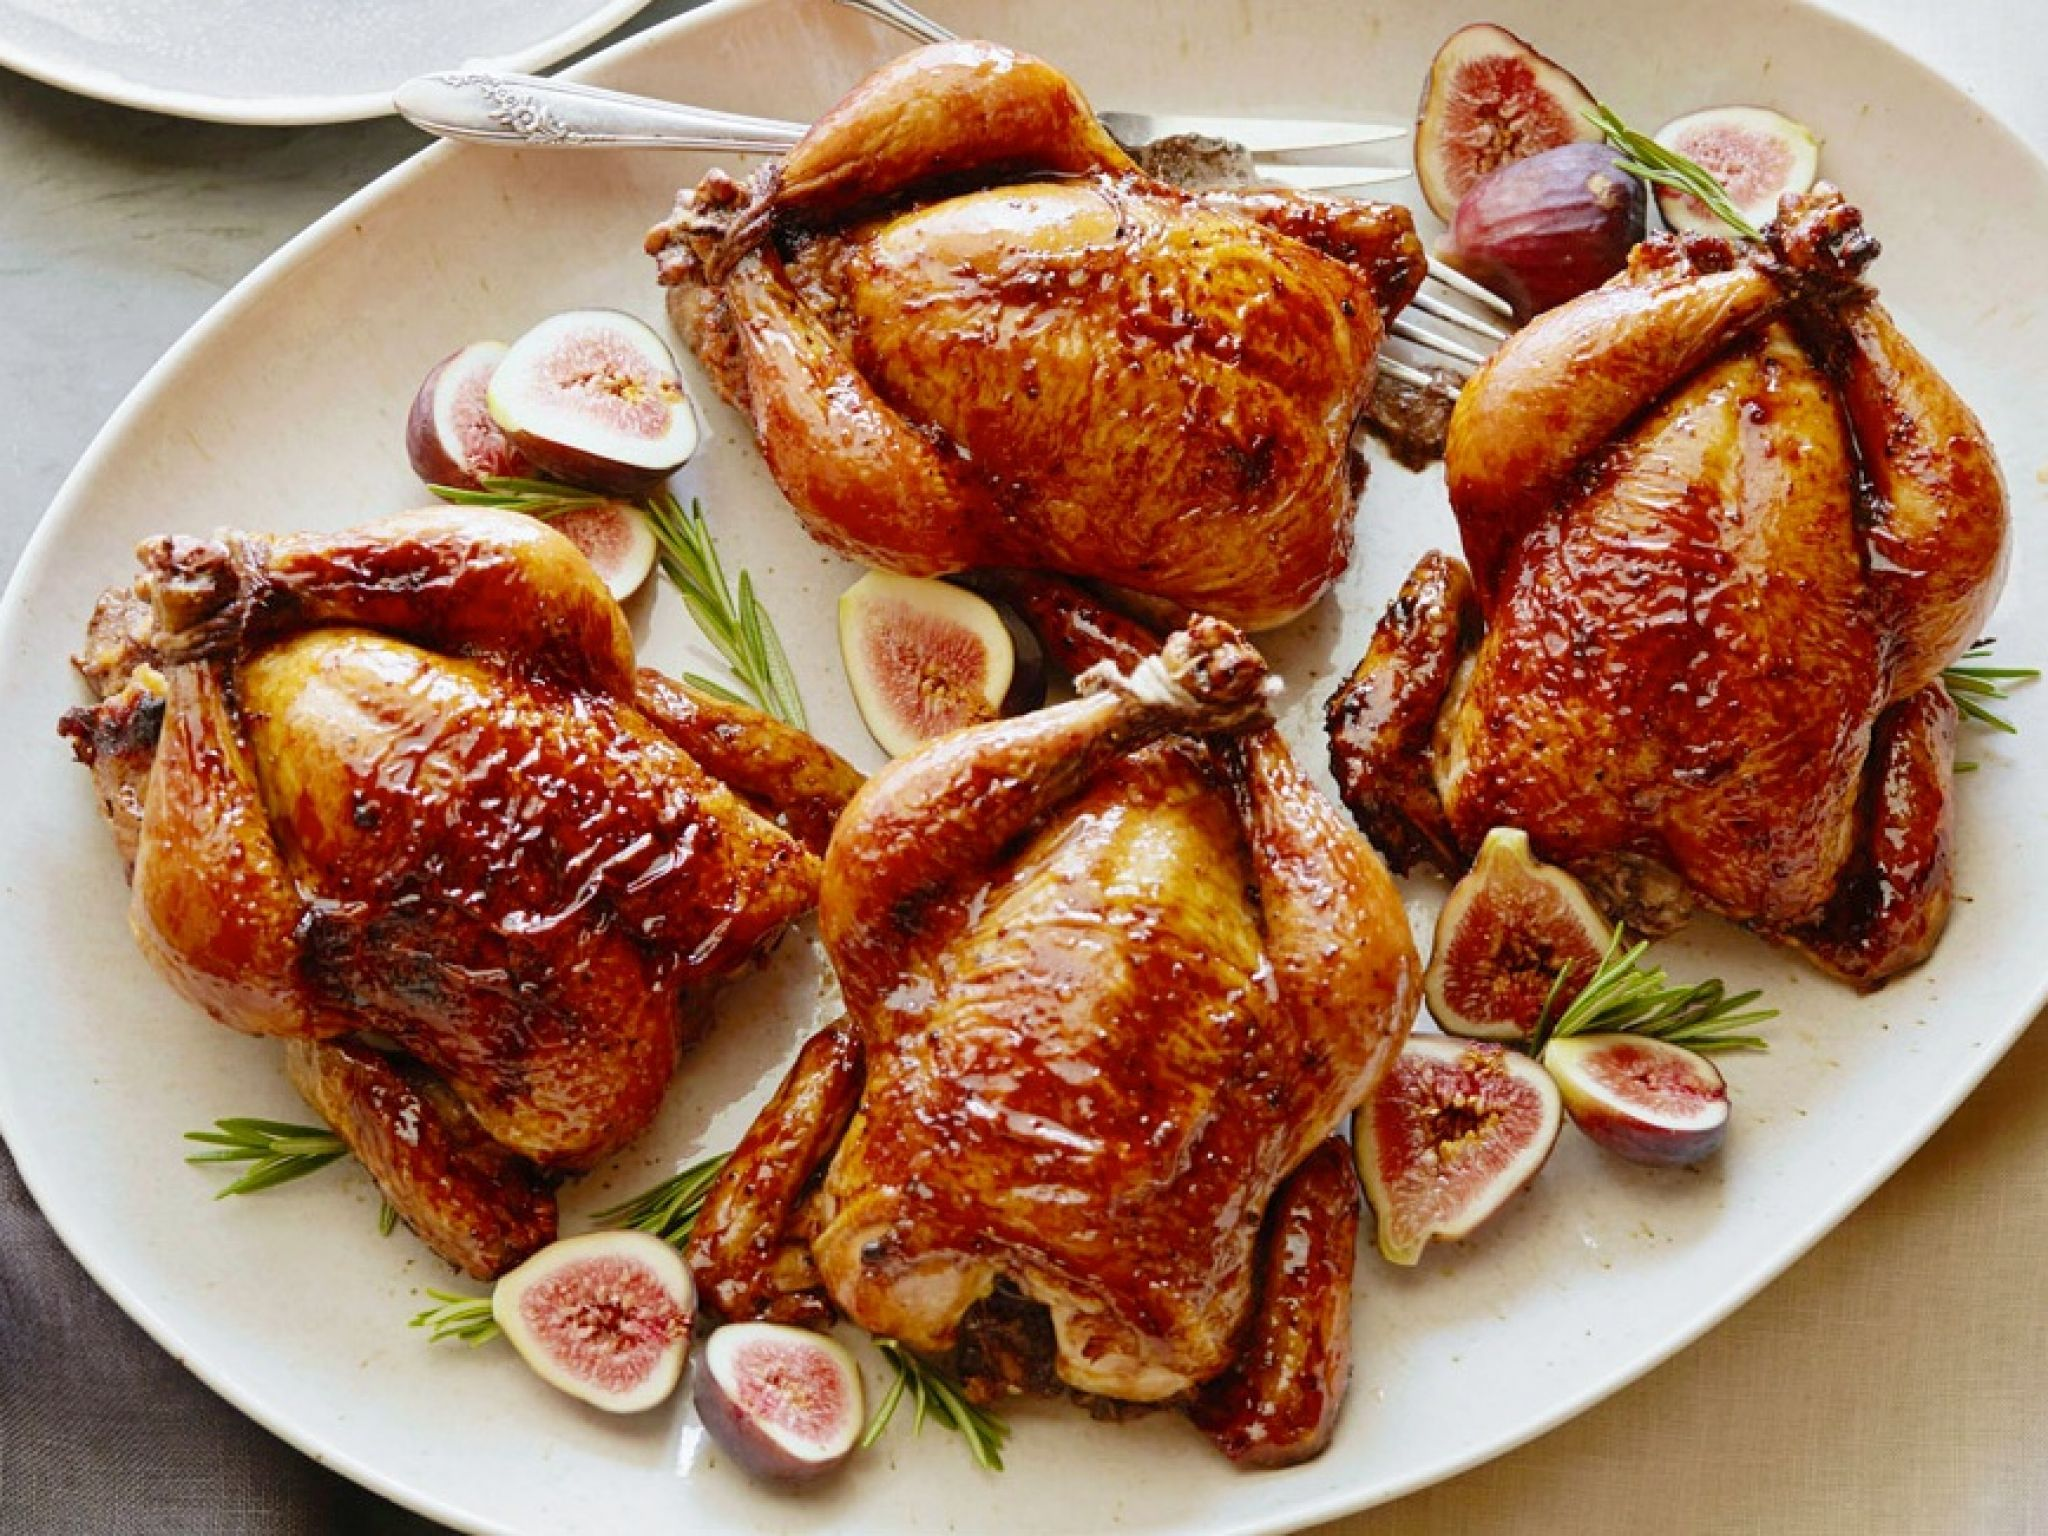 Holiday hens with fig glaze and cornbread stuffing recipe holiday hens with fig glaze and cornbread stuffing recipe pinterest tyler florence stuffing recipes and cornbread forumfinder Choice Image